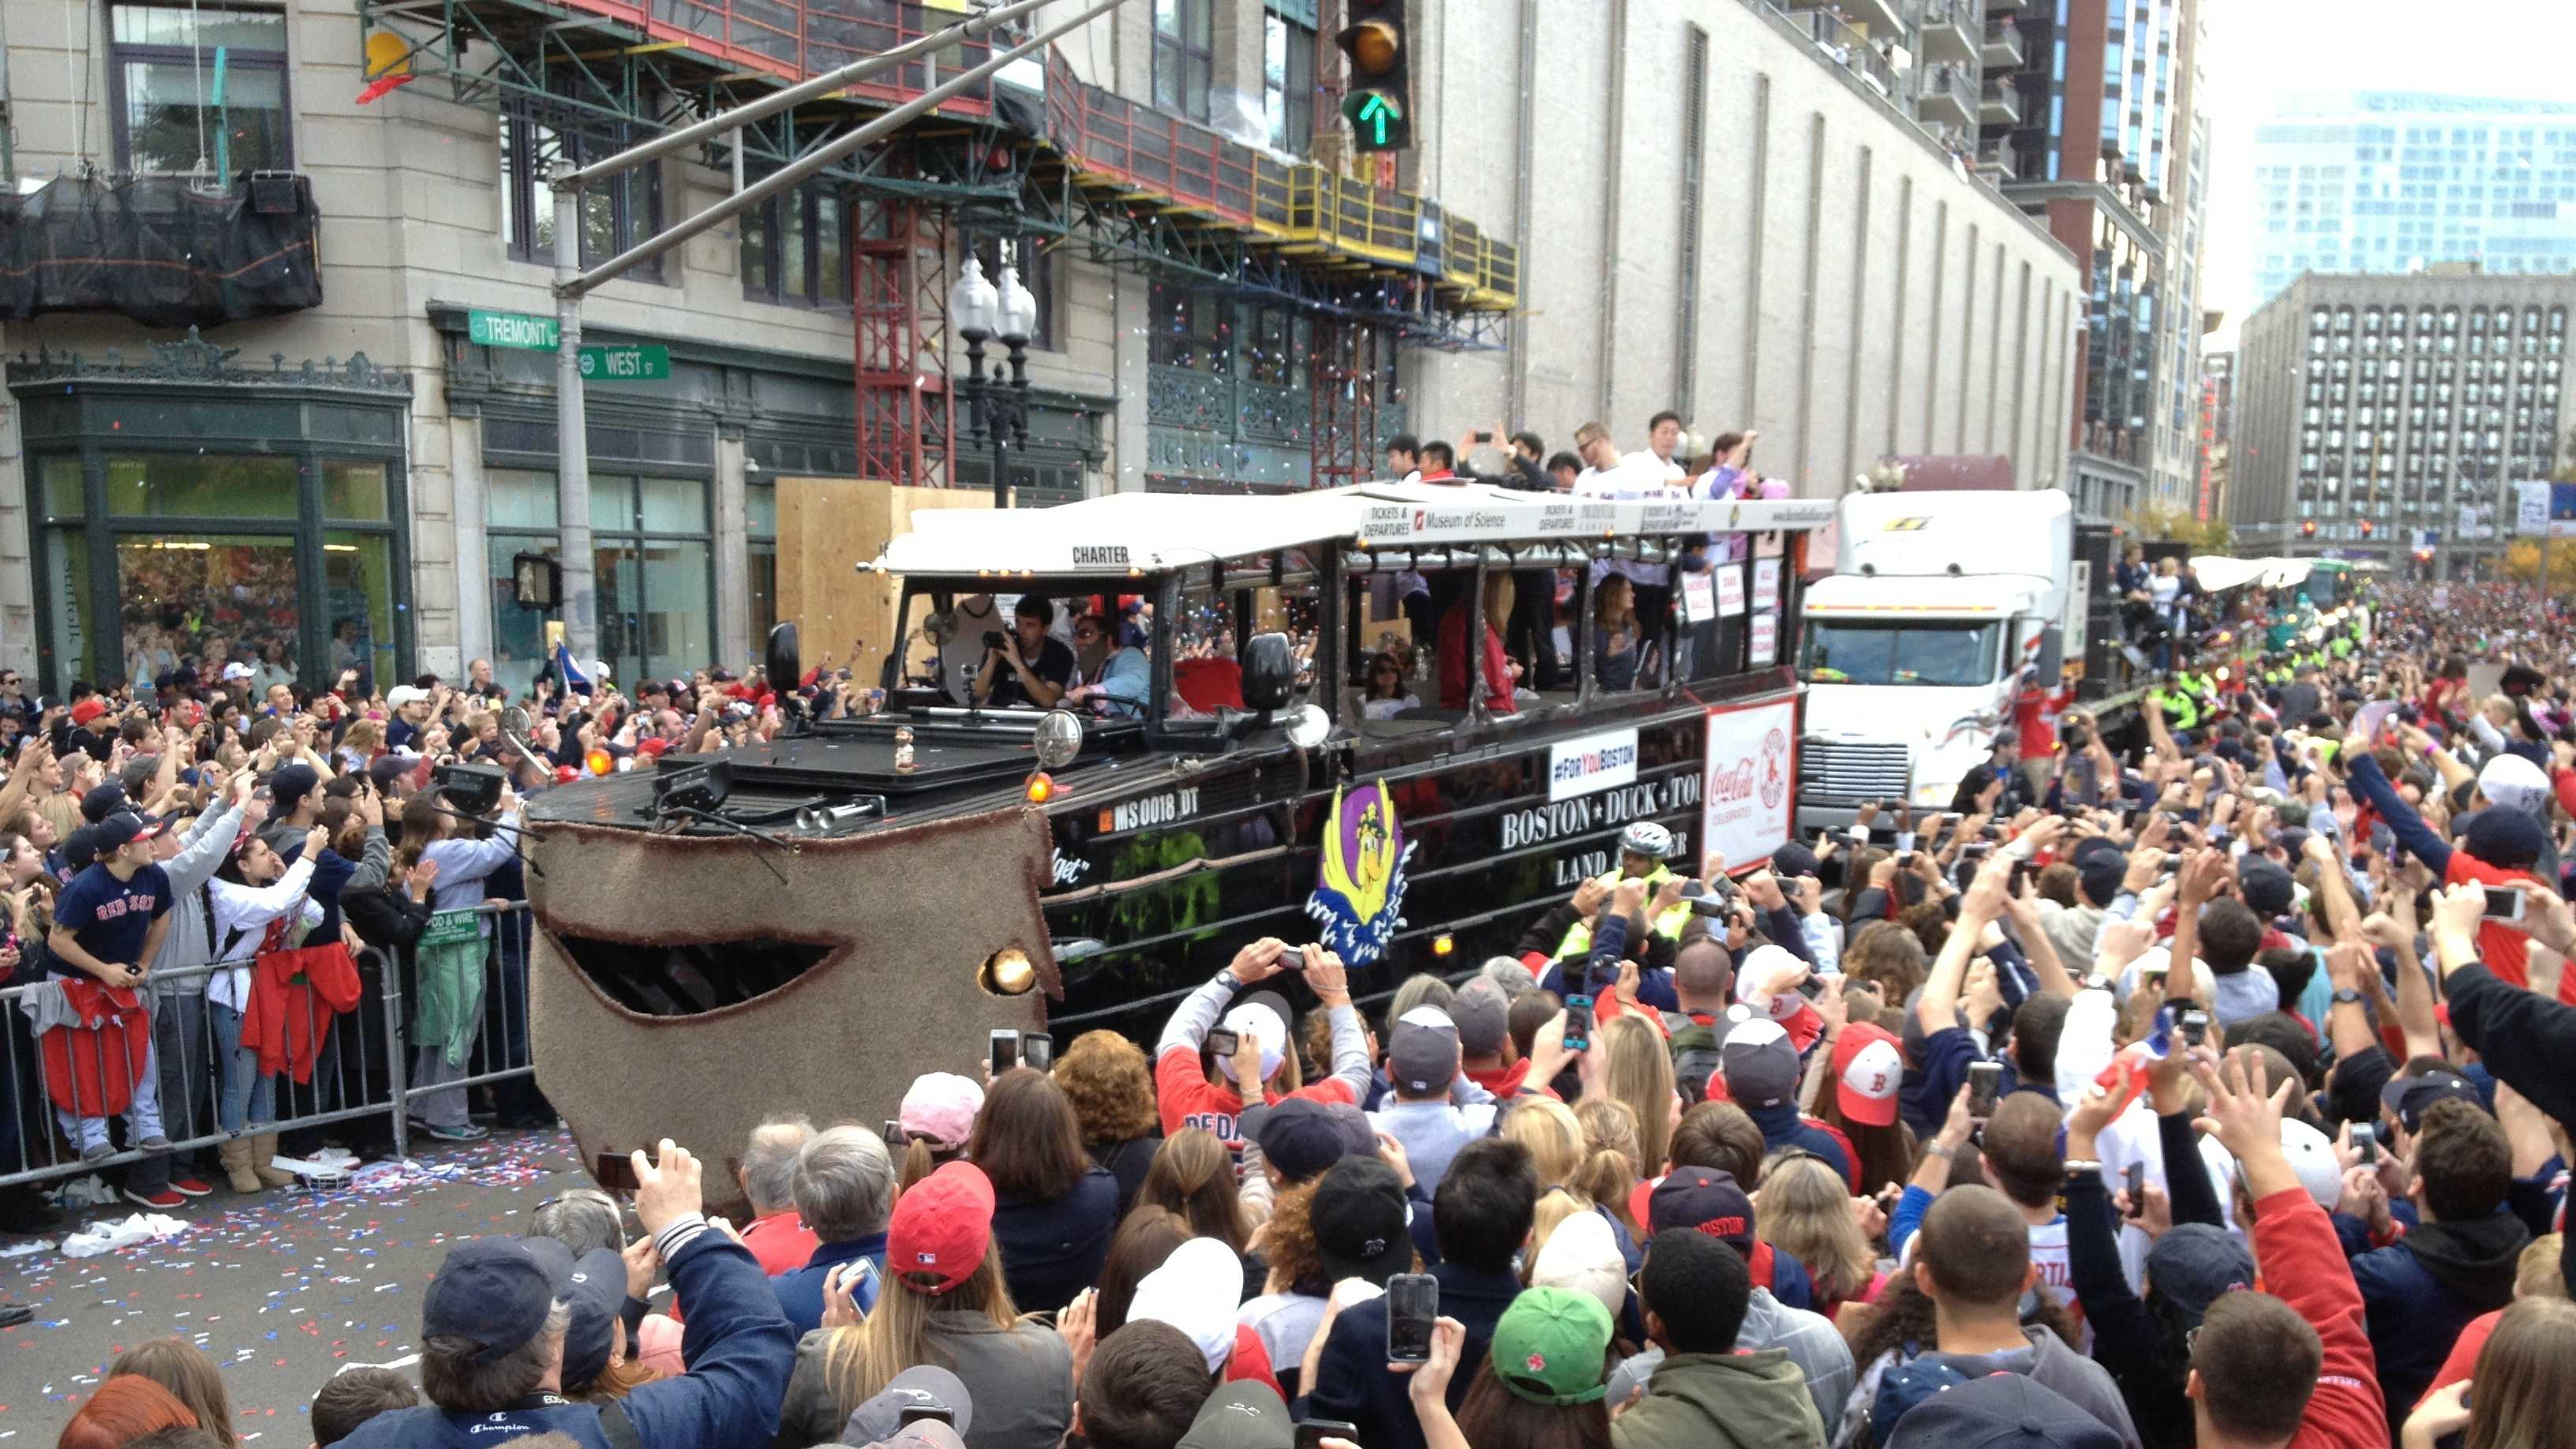 Red Sox duck boat parade